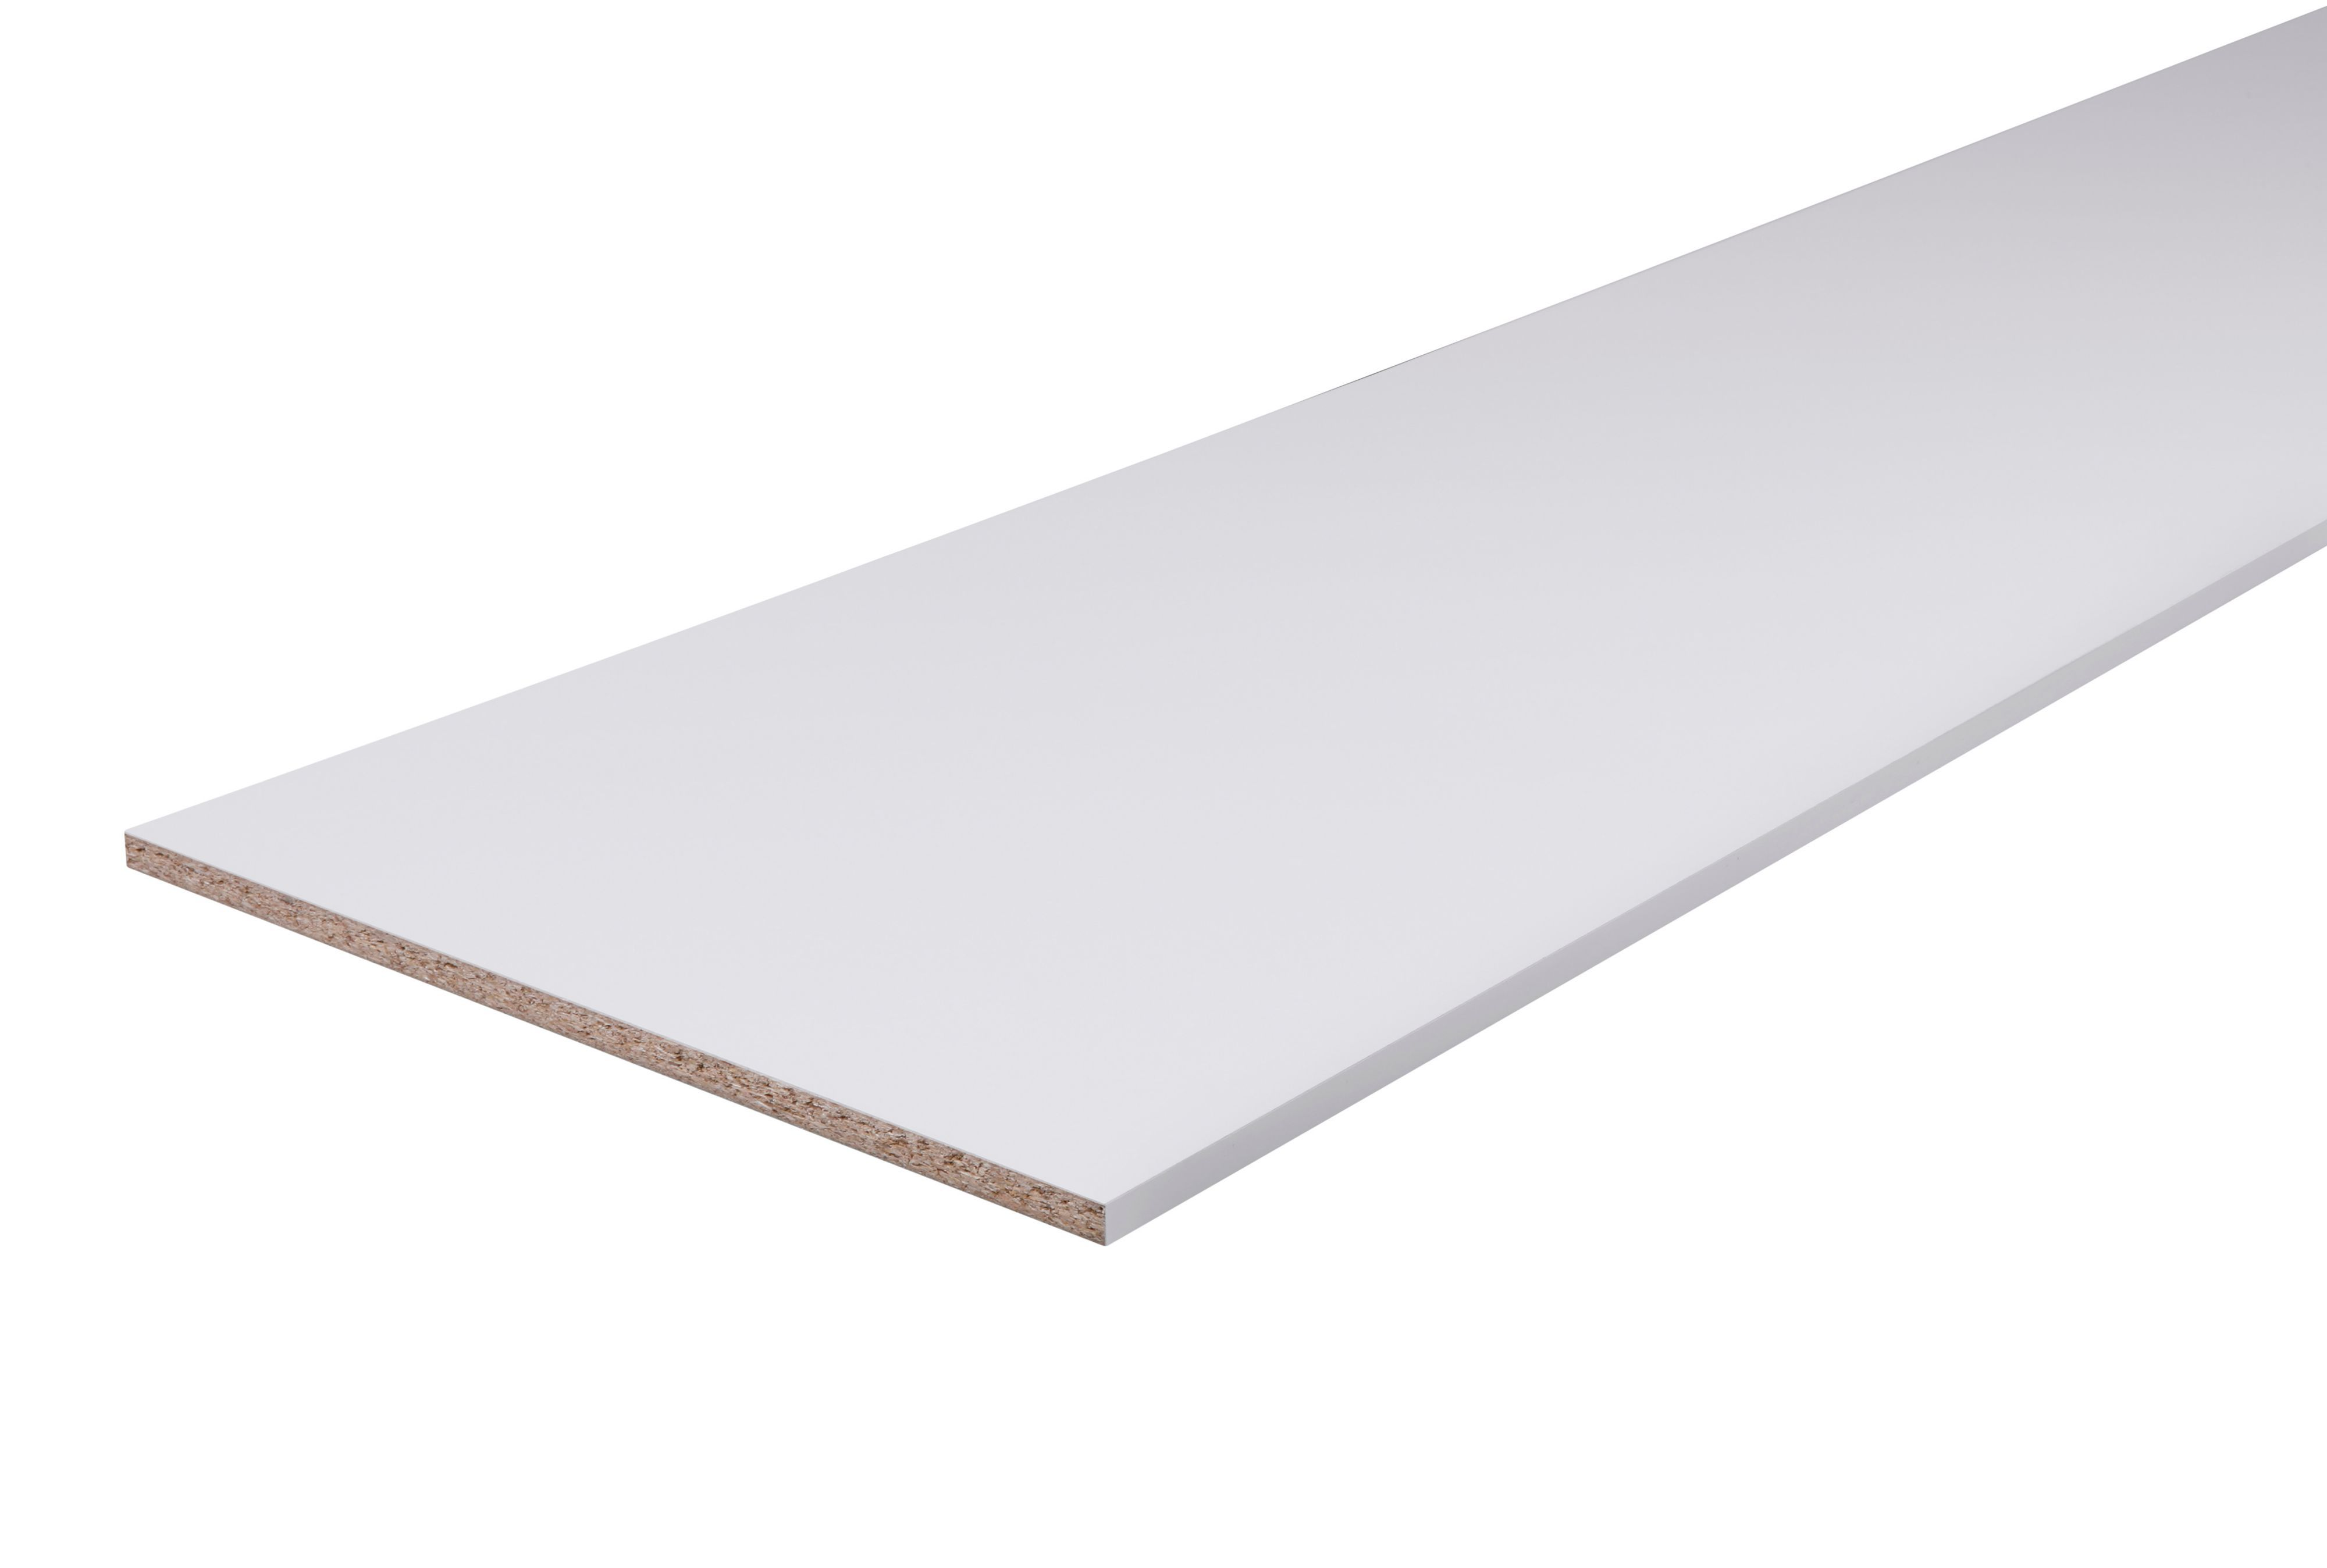 Furniture panel White (L)2000mm (W)400mm (T)16mm